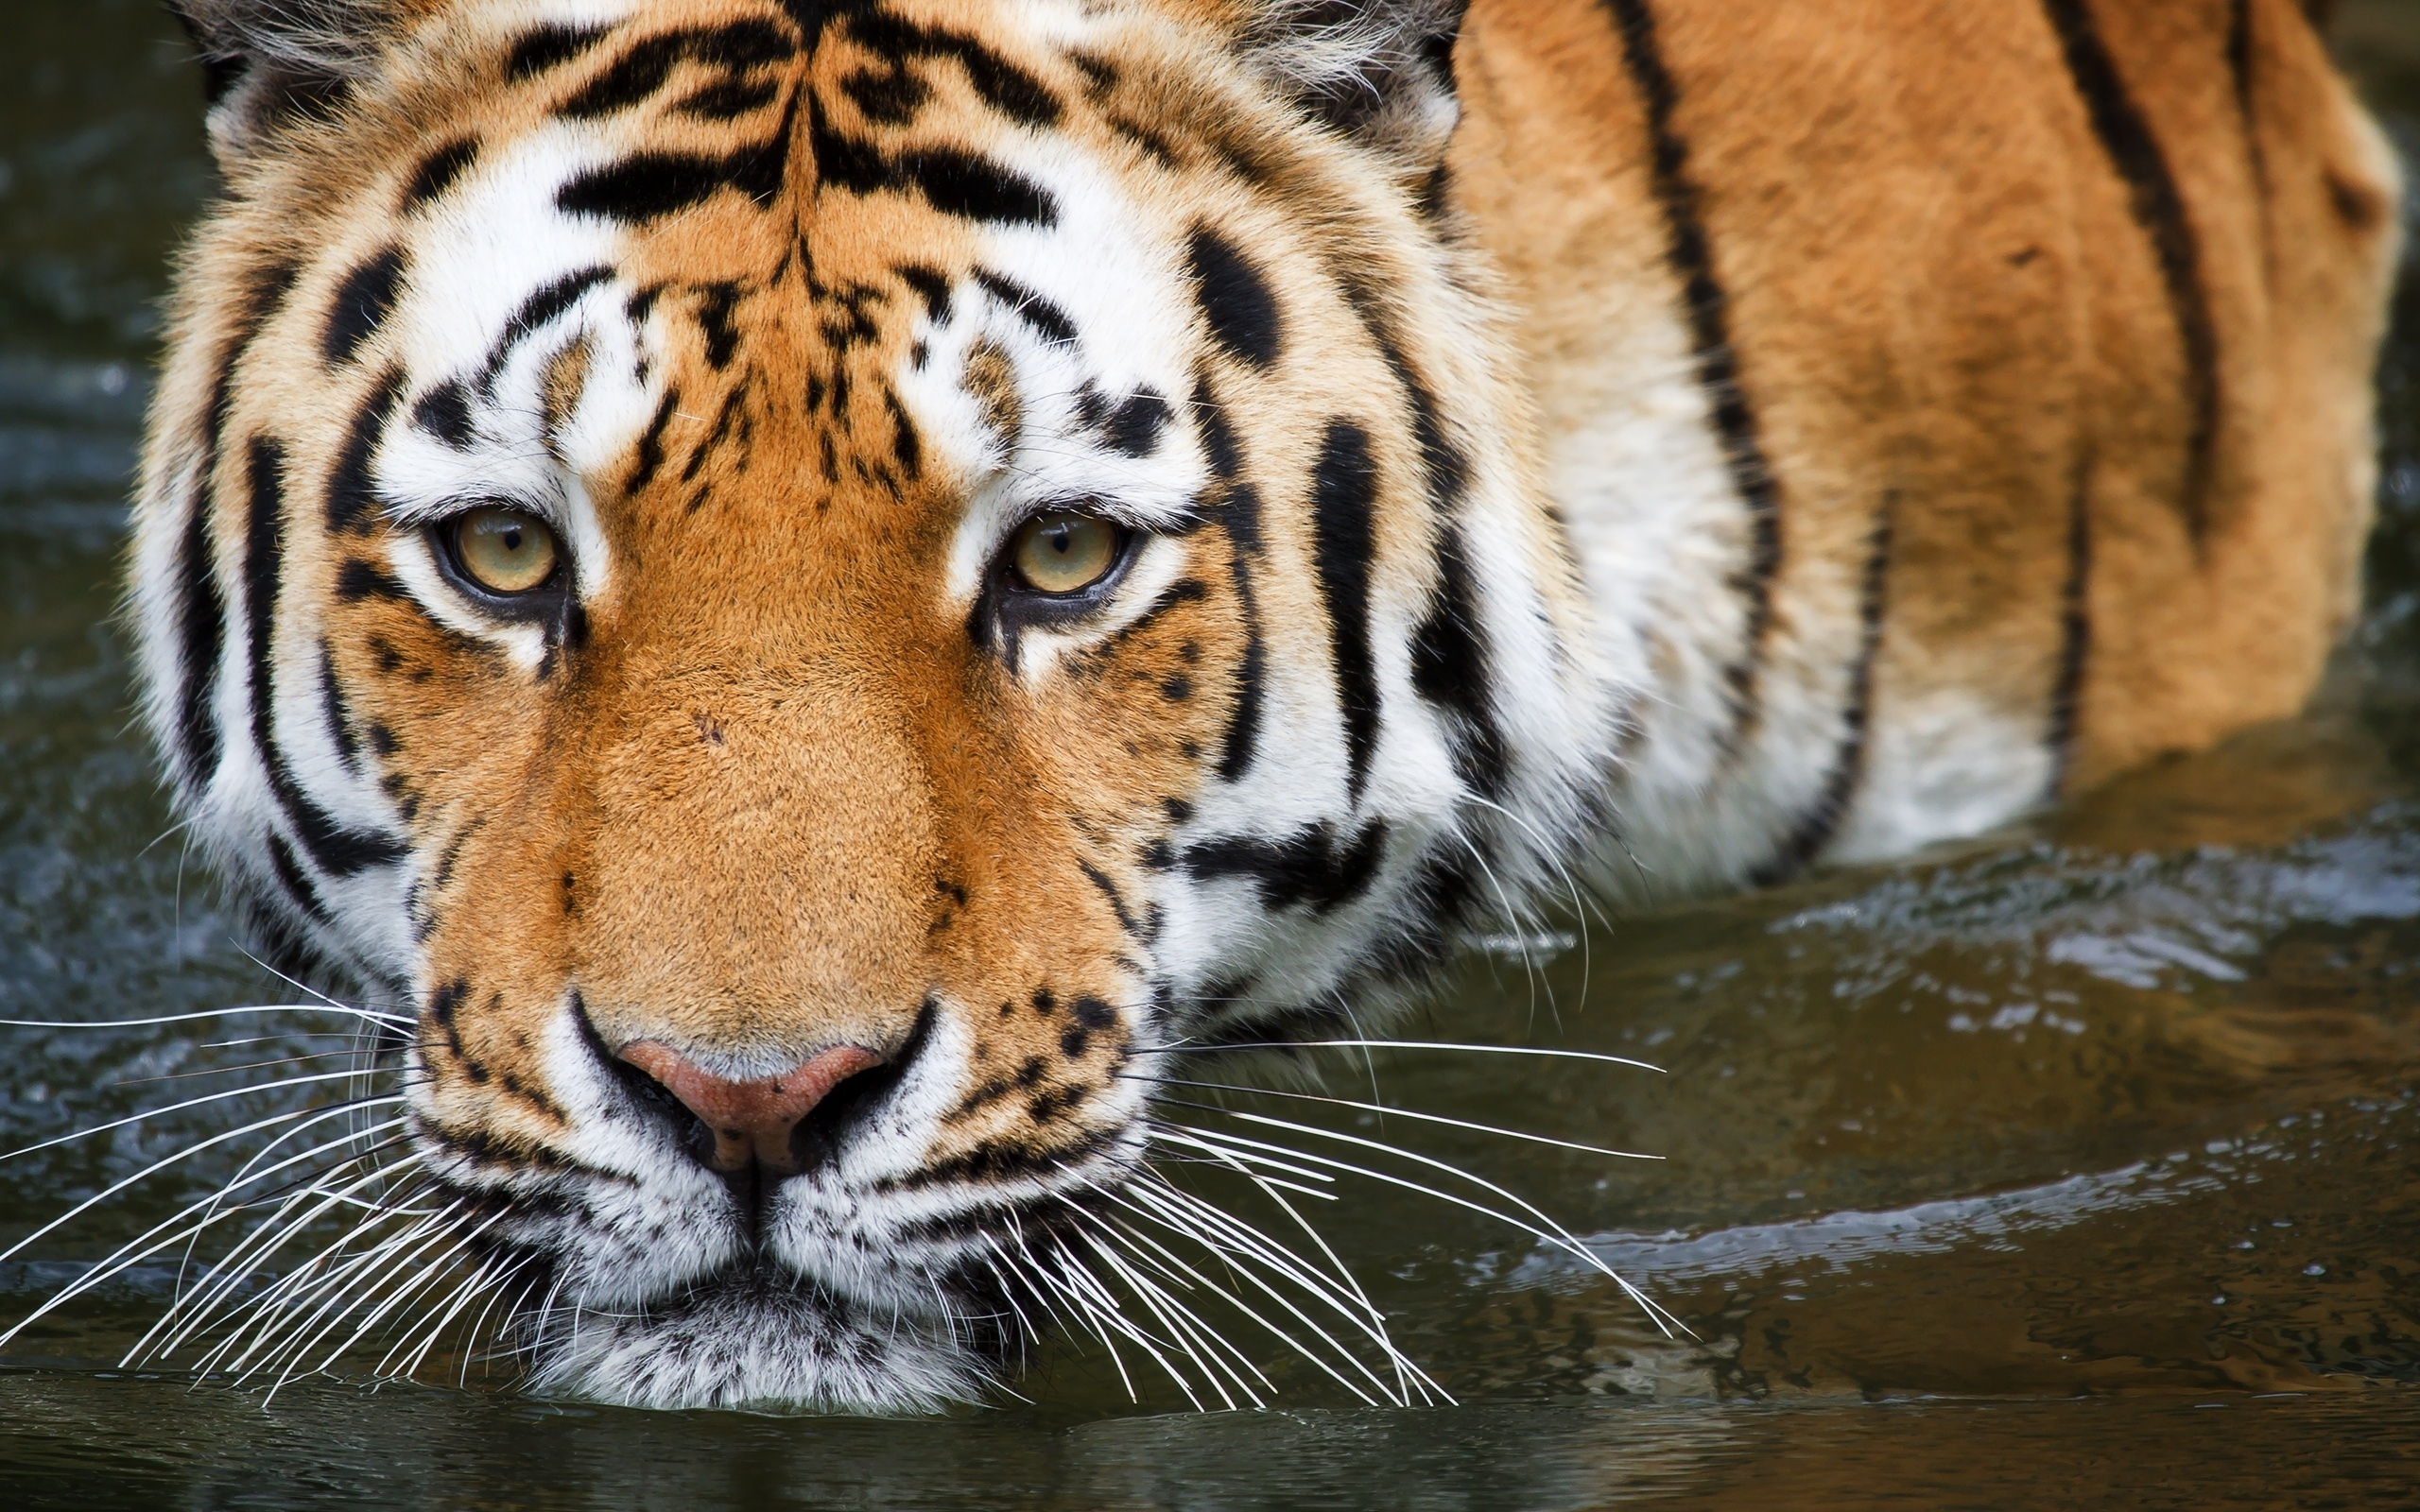 48112 download wallpaper Animals, Tigers screensavers and pictures for free